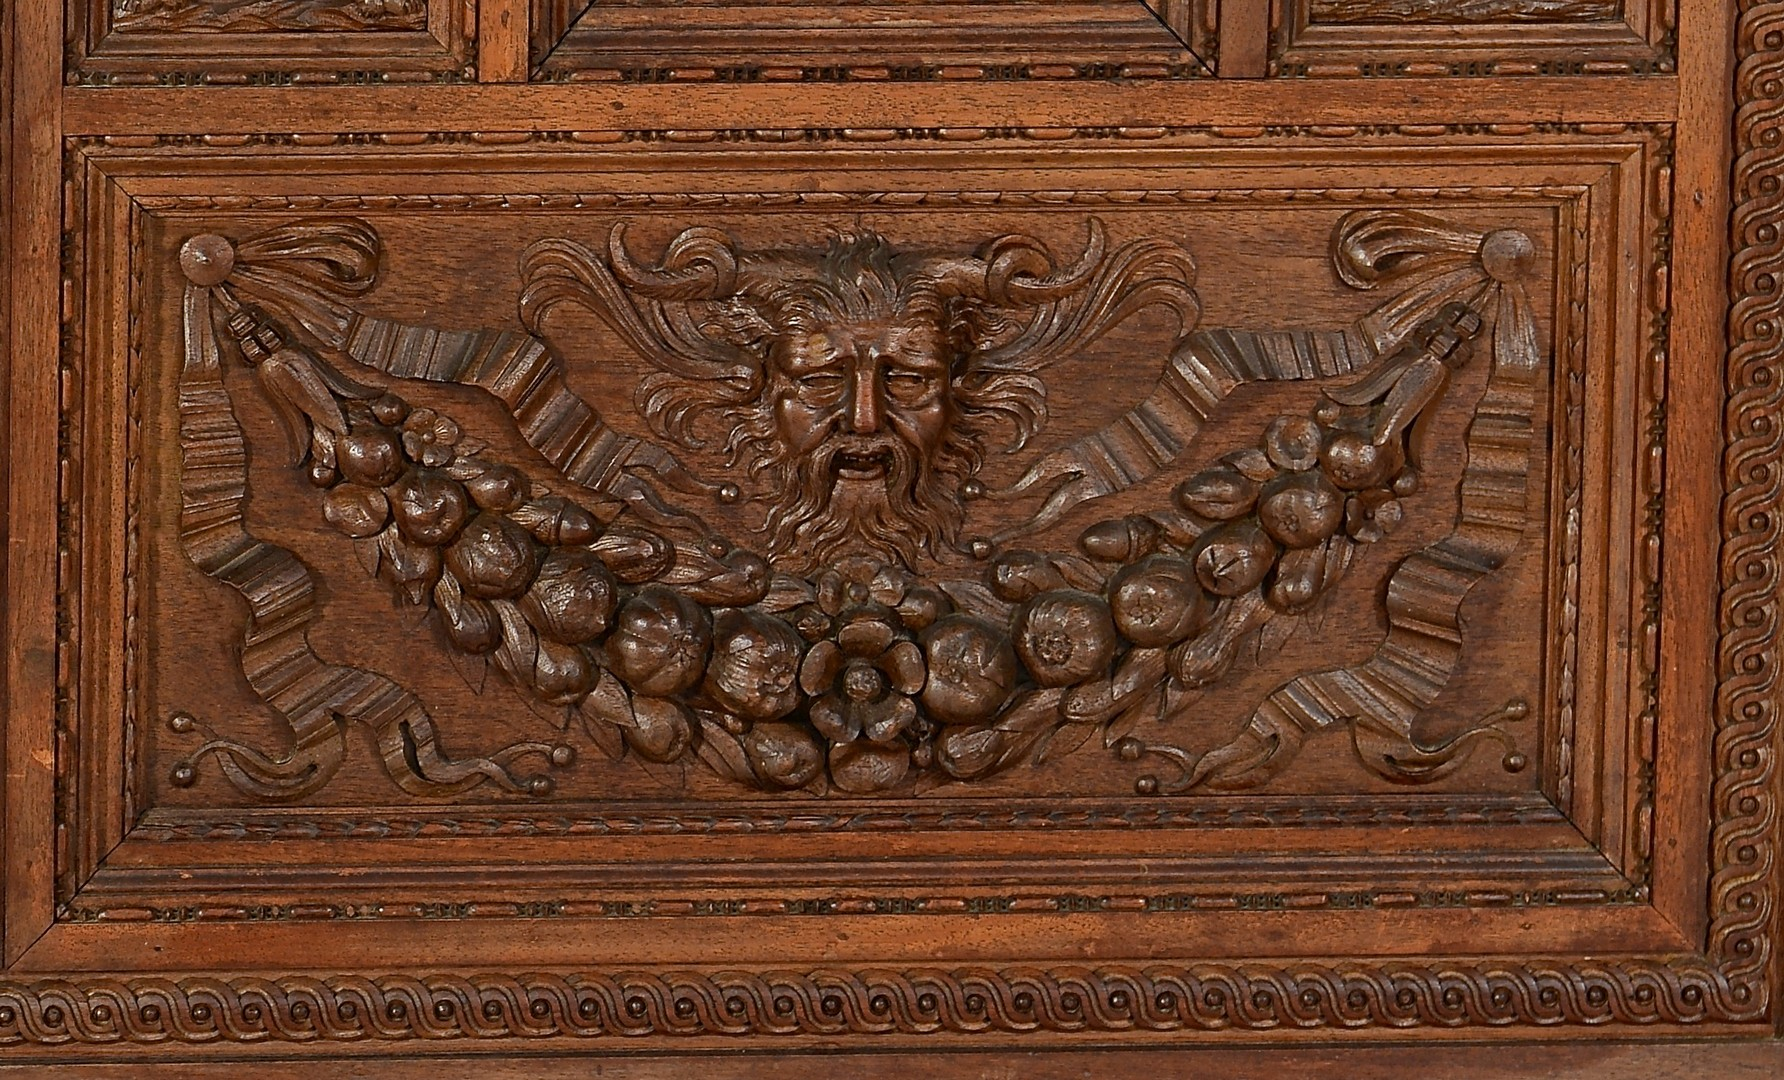 Lot 275 4 European Wooden Carved Panels